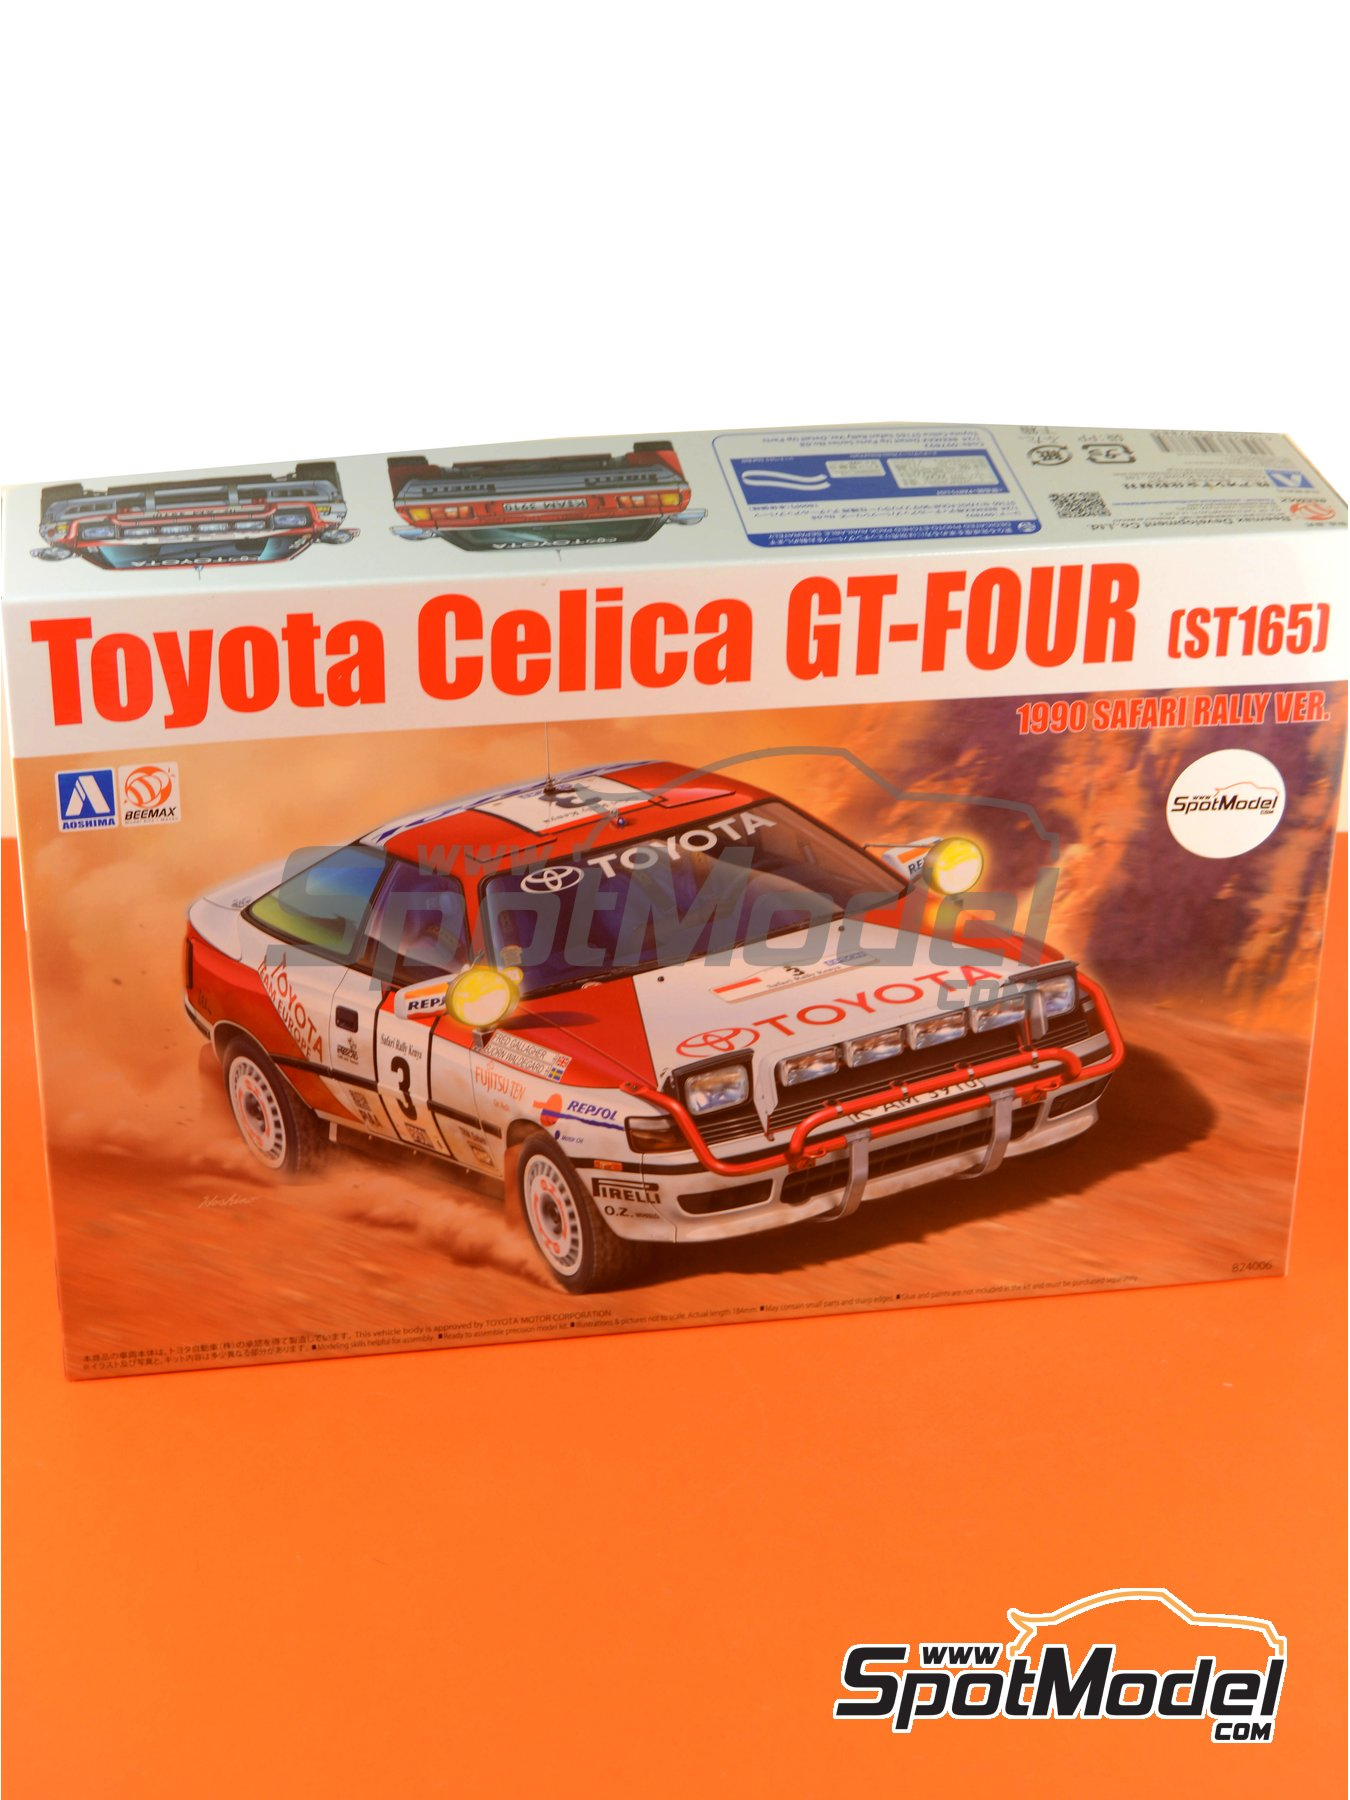 Toyota Celica GT-Four ST165 Group A Repsol - Safari Rally 1990 | Model car kit in 1/24 scale manufactured by Beemax Model Kits (ref.B24006, also Aoshima 097885) image